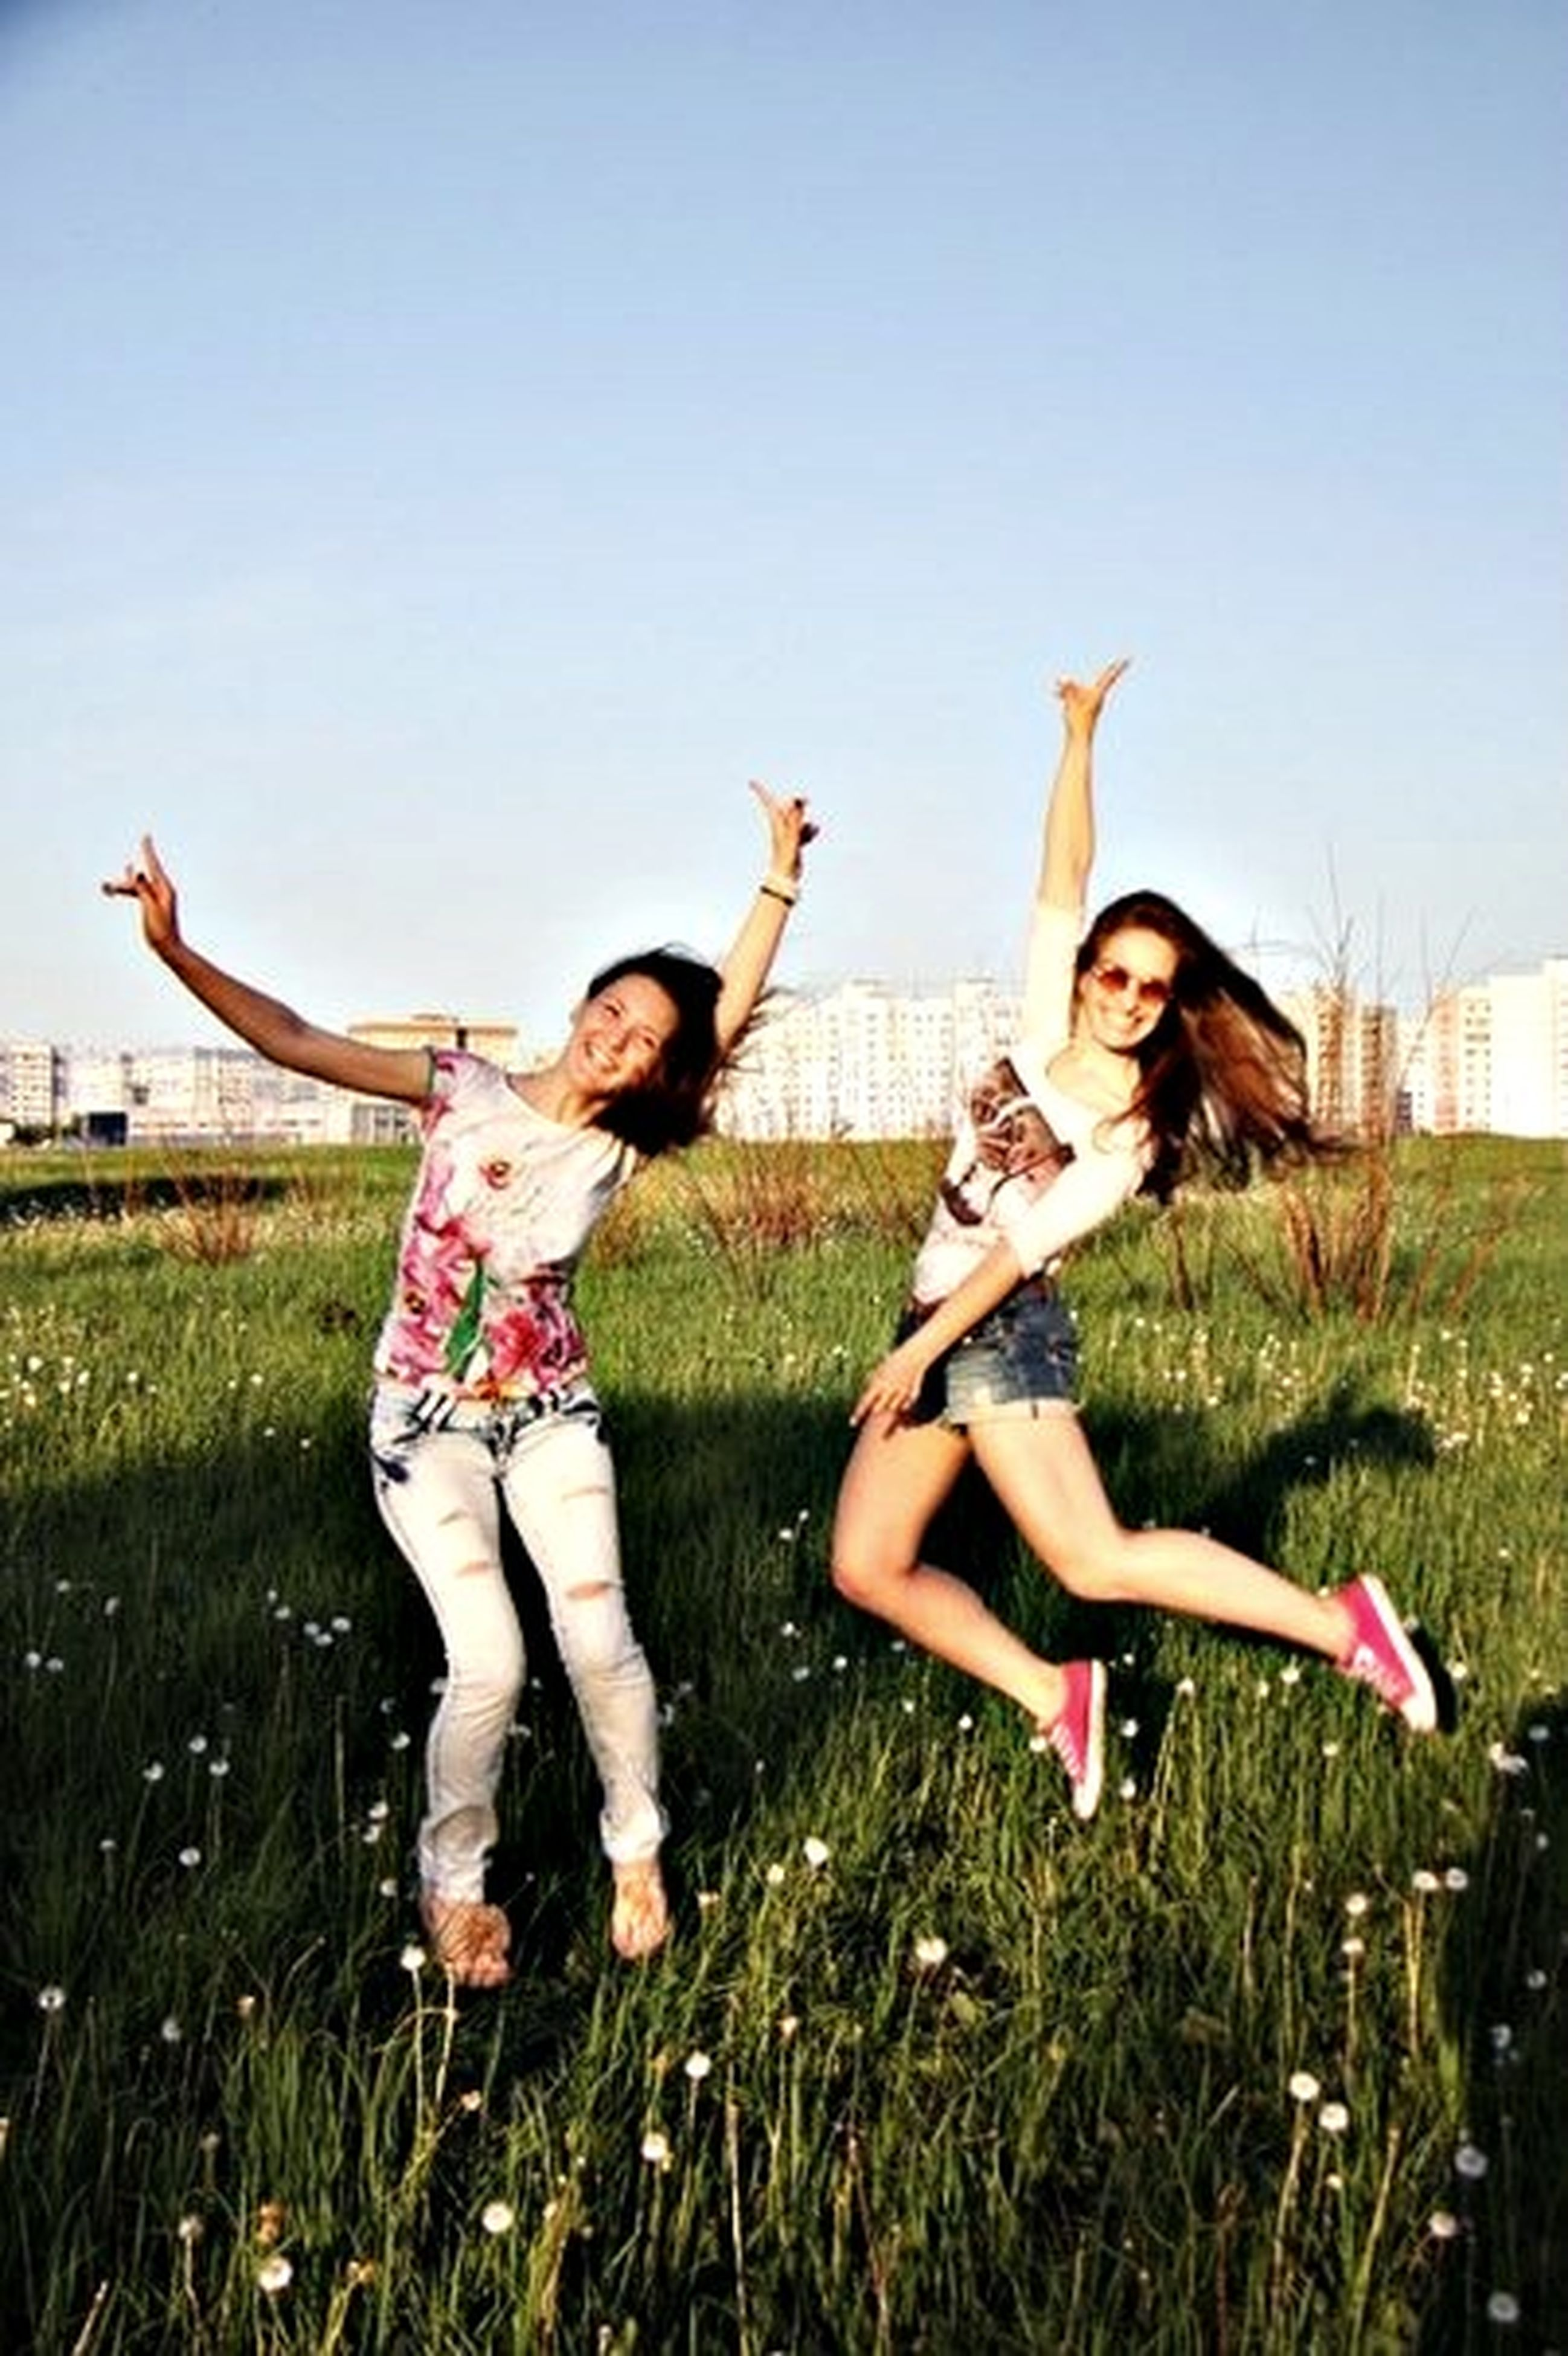 lifestyles, leisure activity, grass, full length, young adult, person, casual clothing, young women, childhood, enjoyment, fun, happiness, field, girls, elementary age, togetherness, arms raised, playing